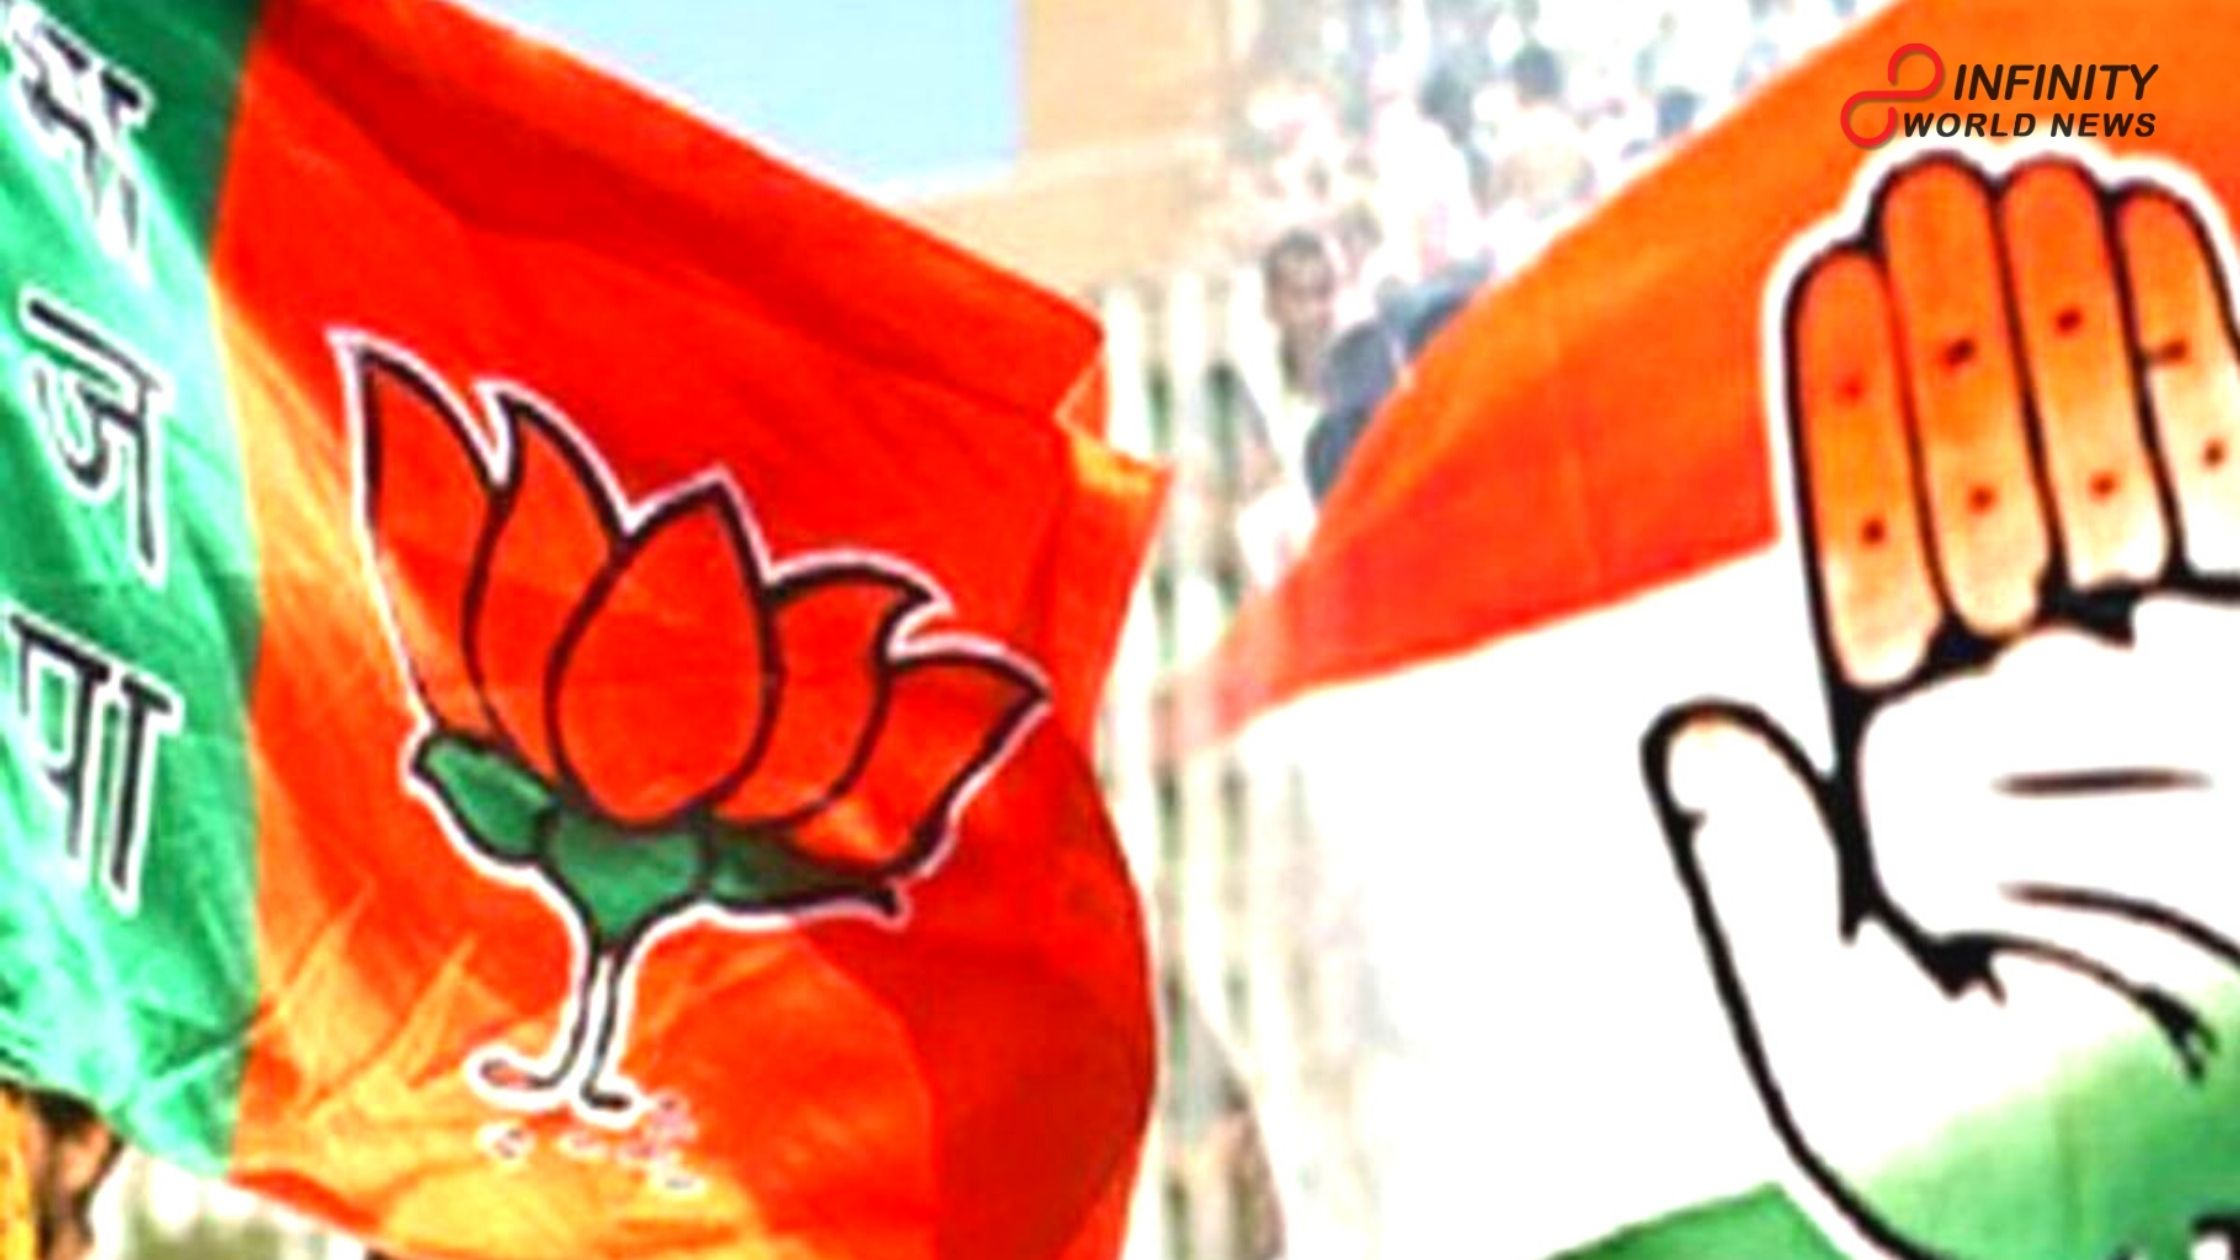 Mutual Agreement among BJP and Congress